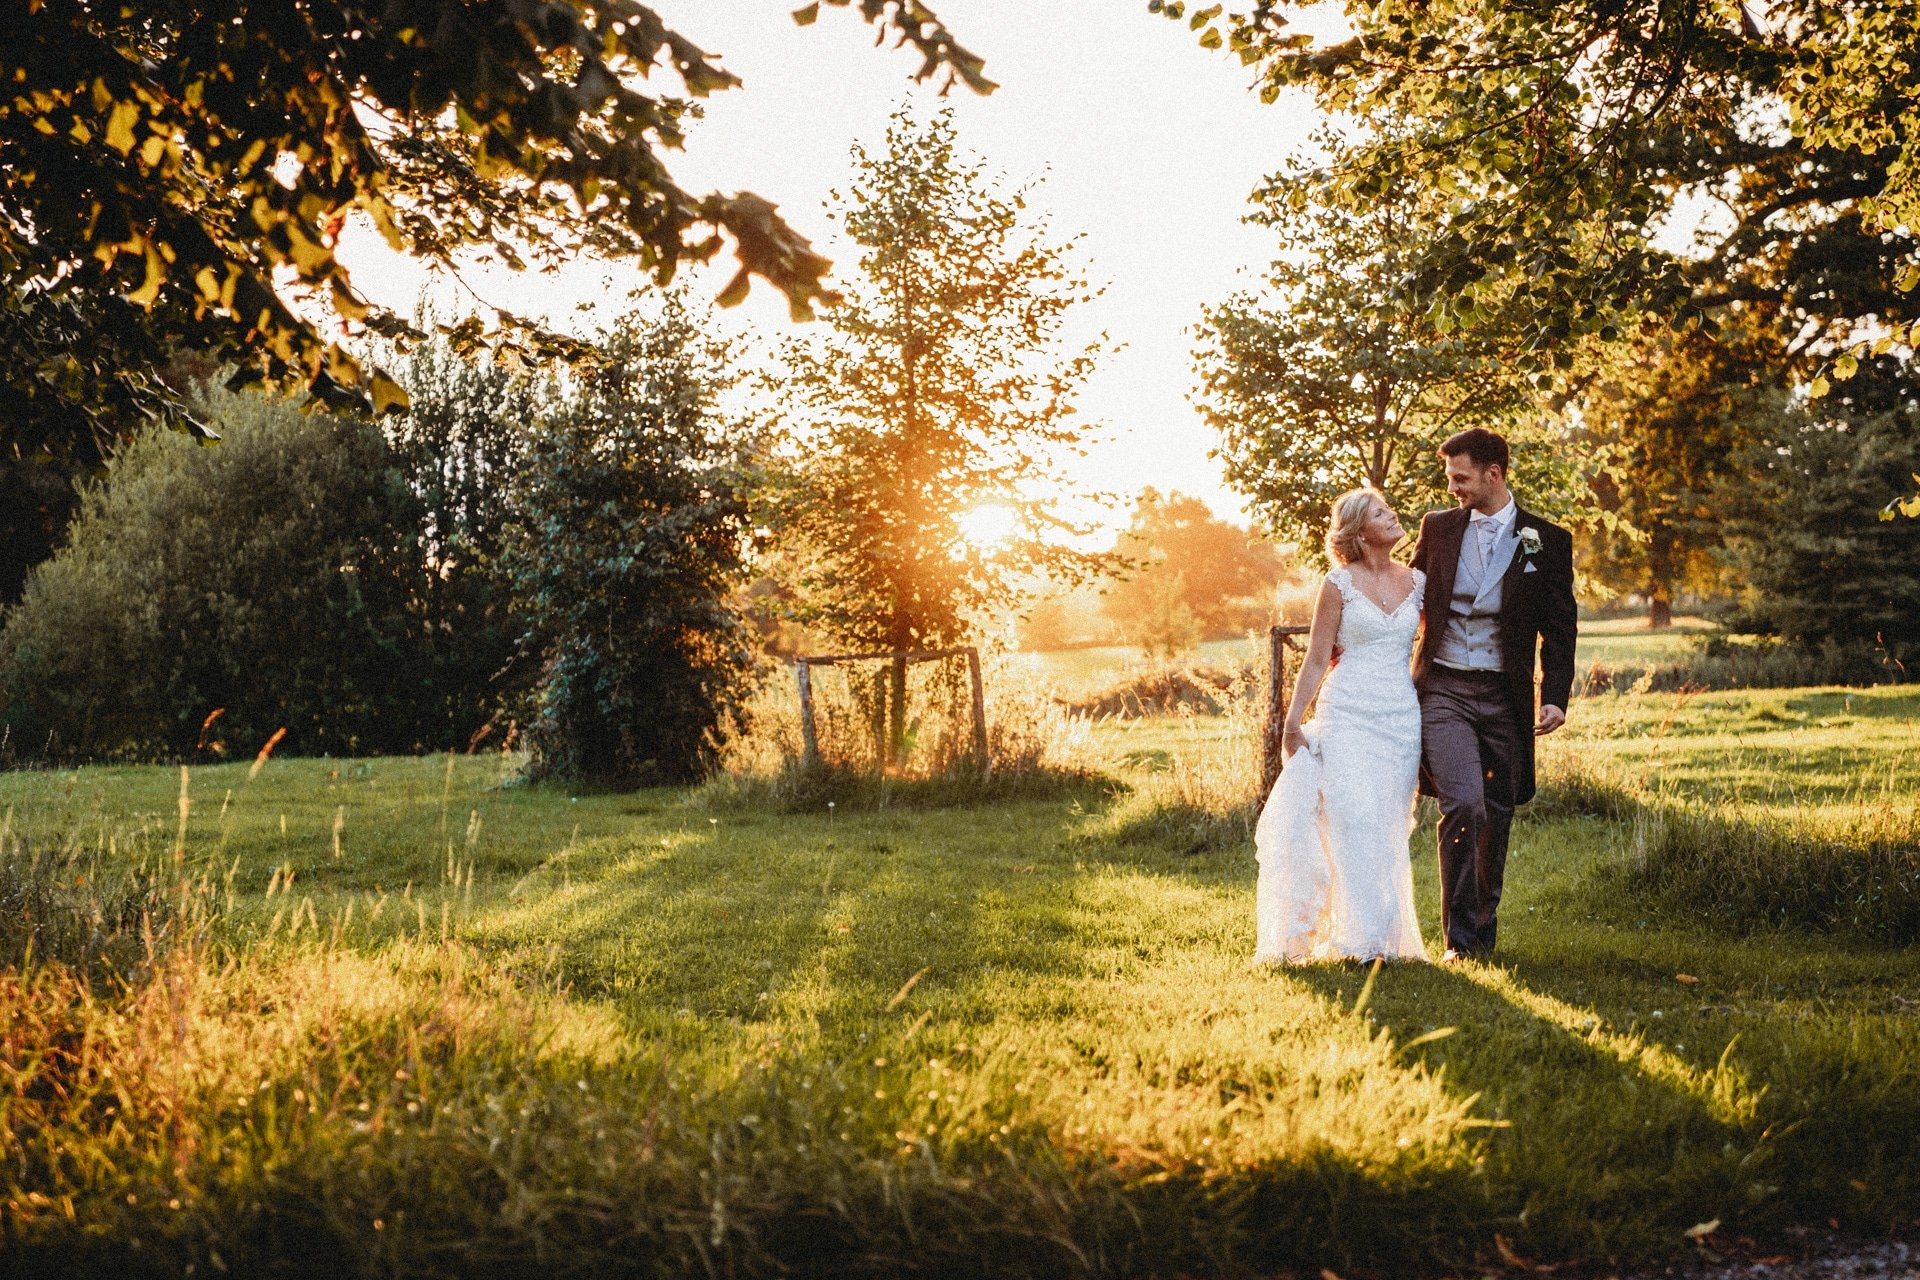 Loseley Park Wedding Photographer - couple walking through a golden sunset